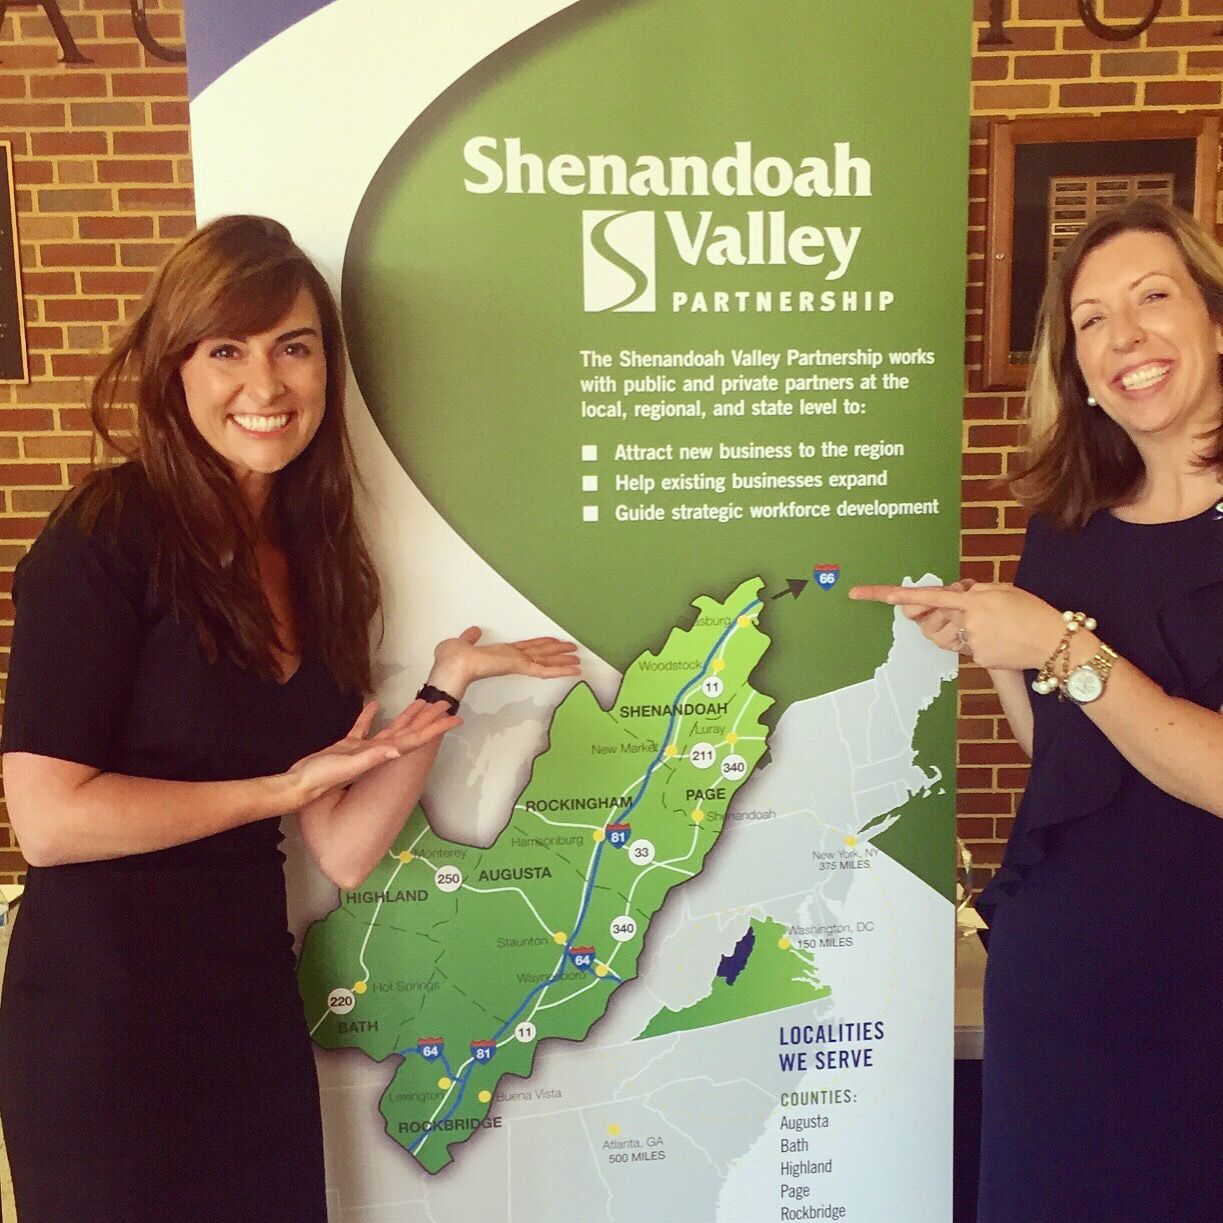 DreamWakers CEO Monica Gray was the keynote speaker at the Shenandoah Valley Partnership Annual Meeting